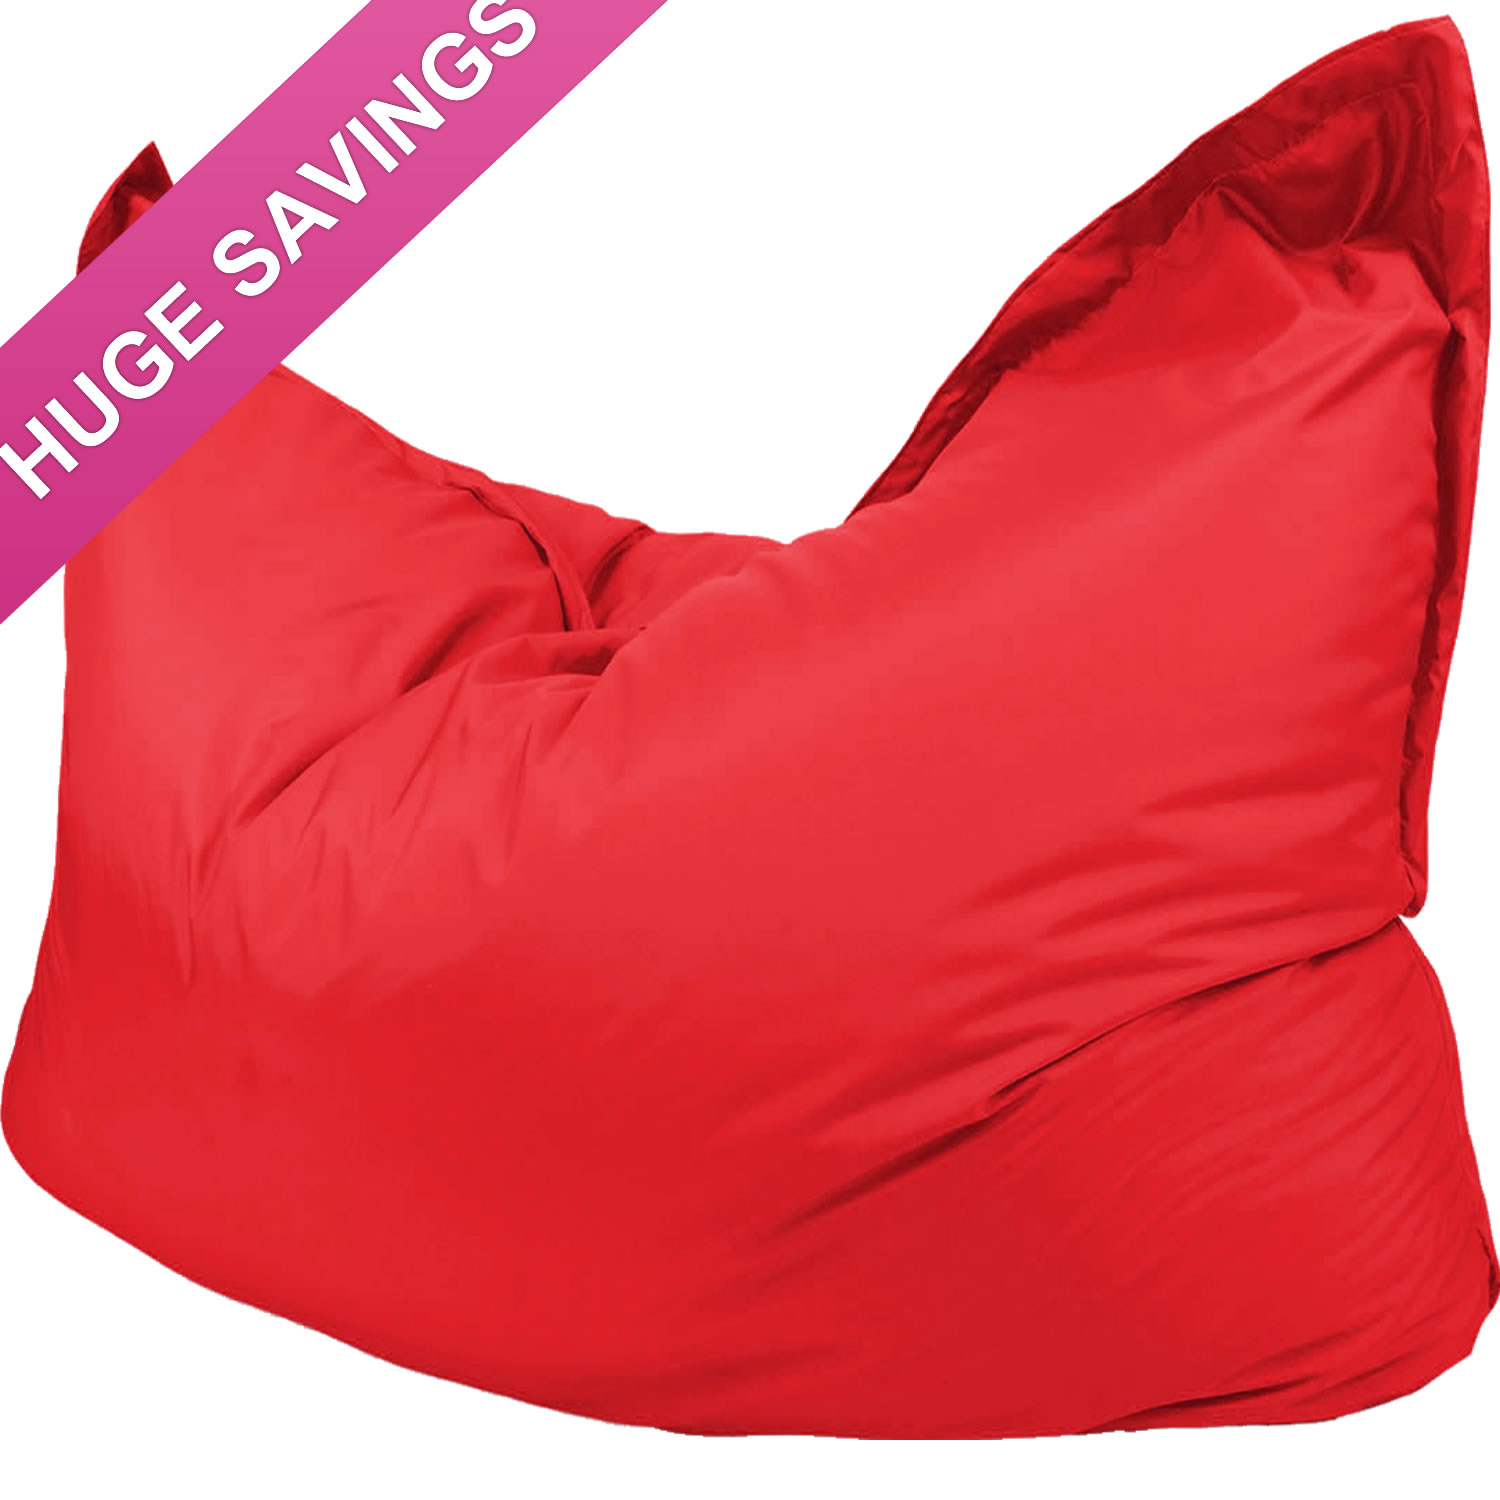 Big Brother Beanbag for indoors or Outdoors